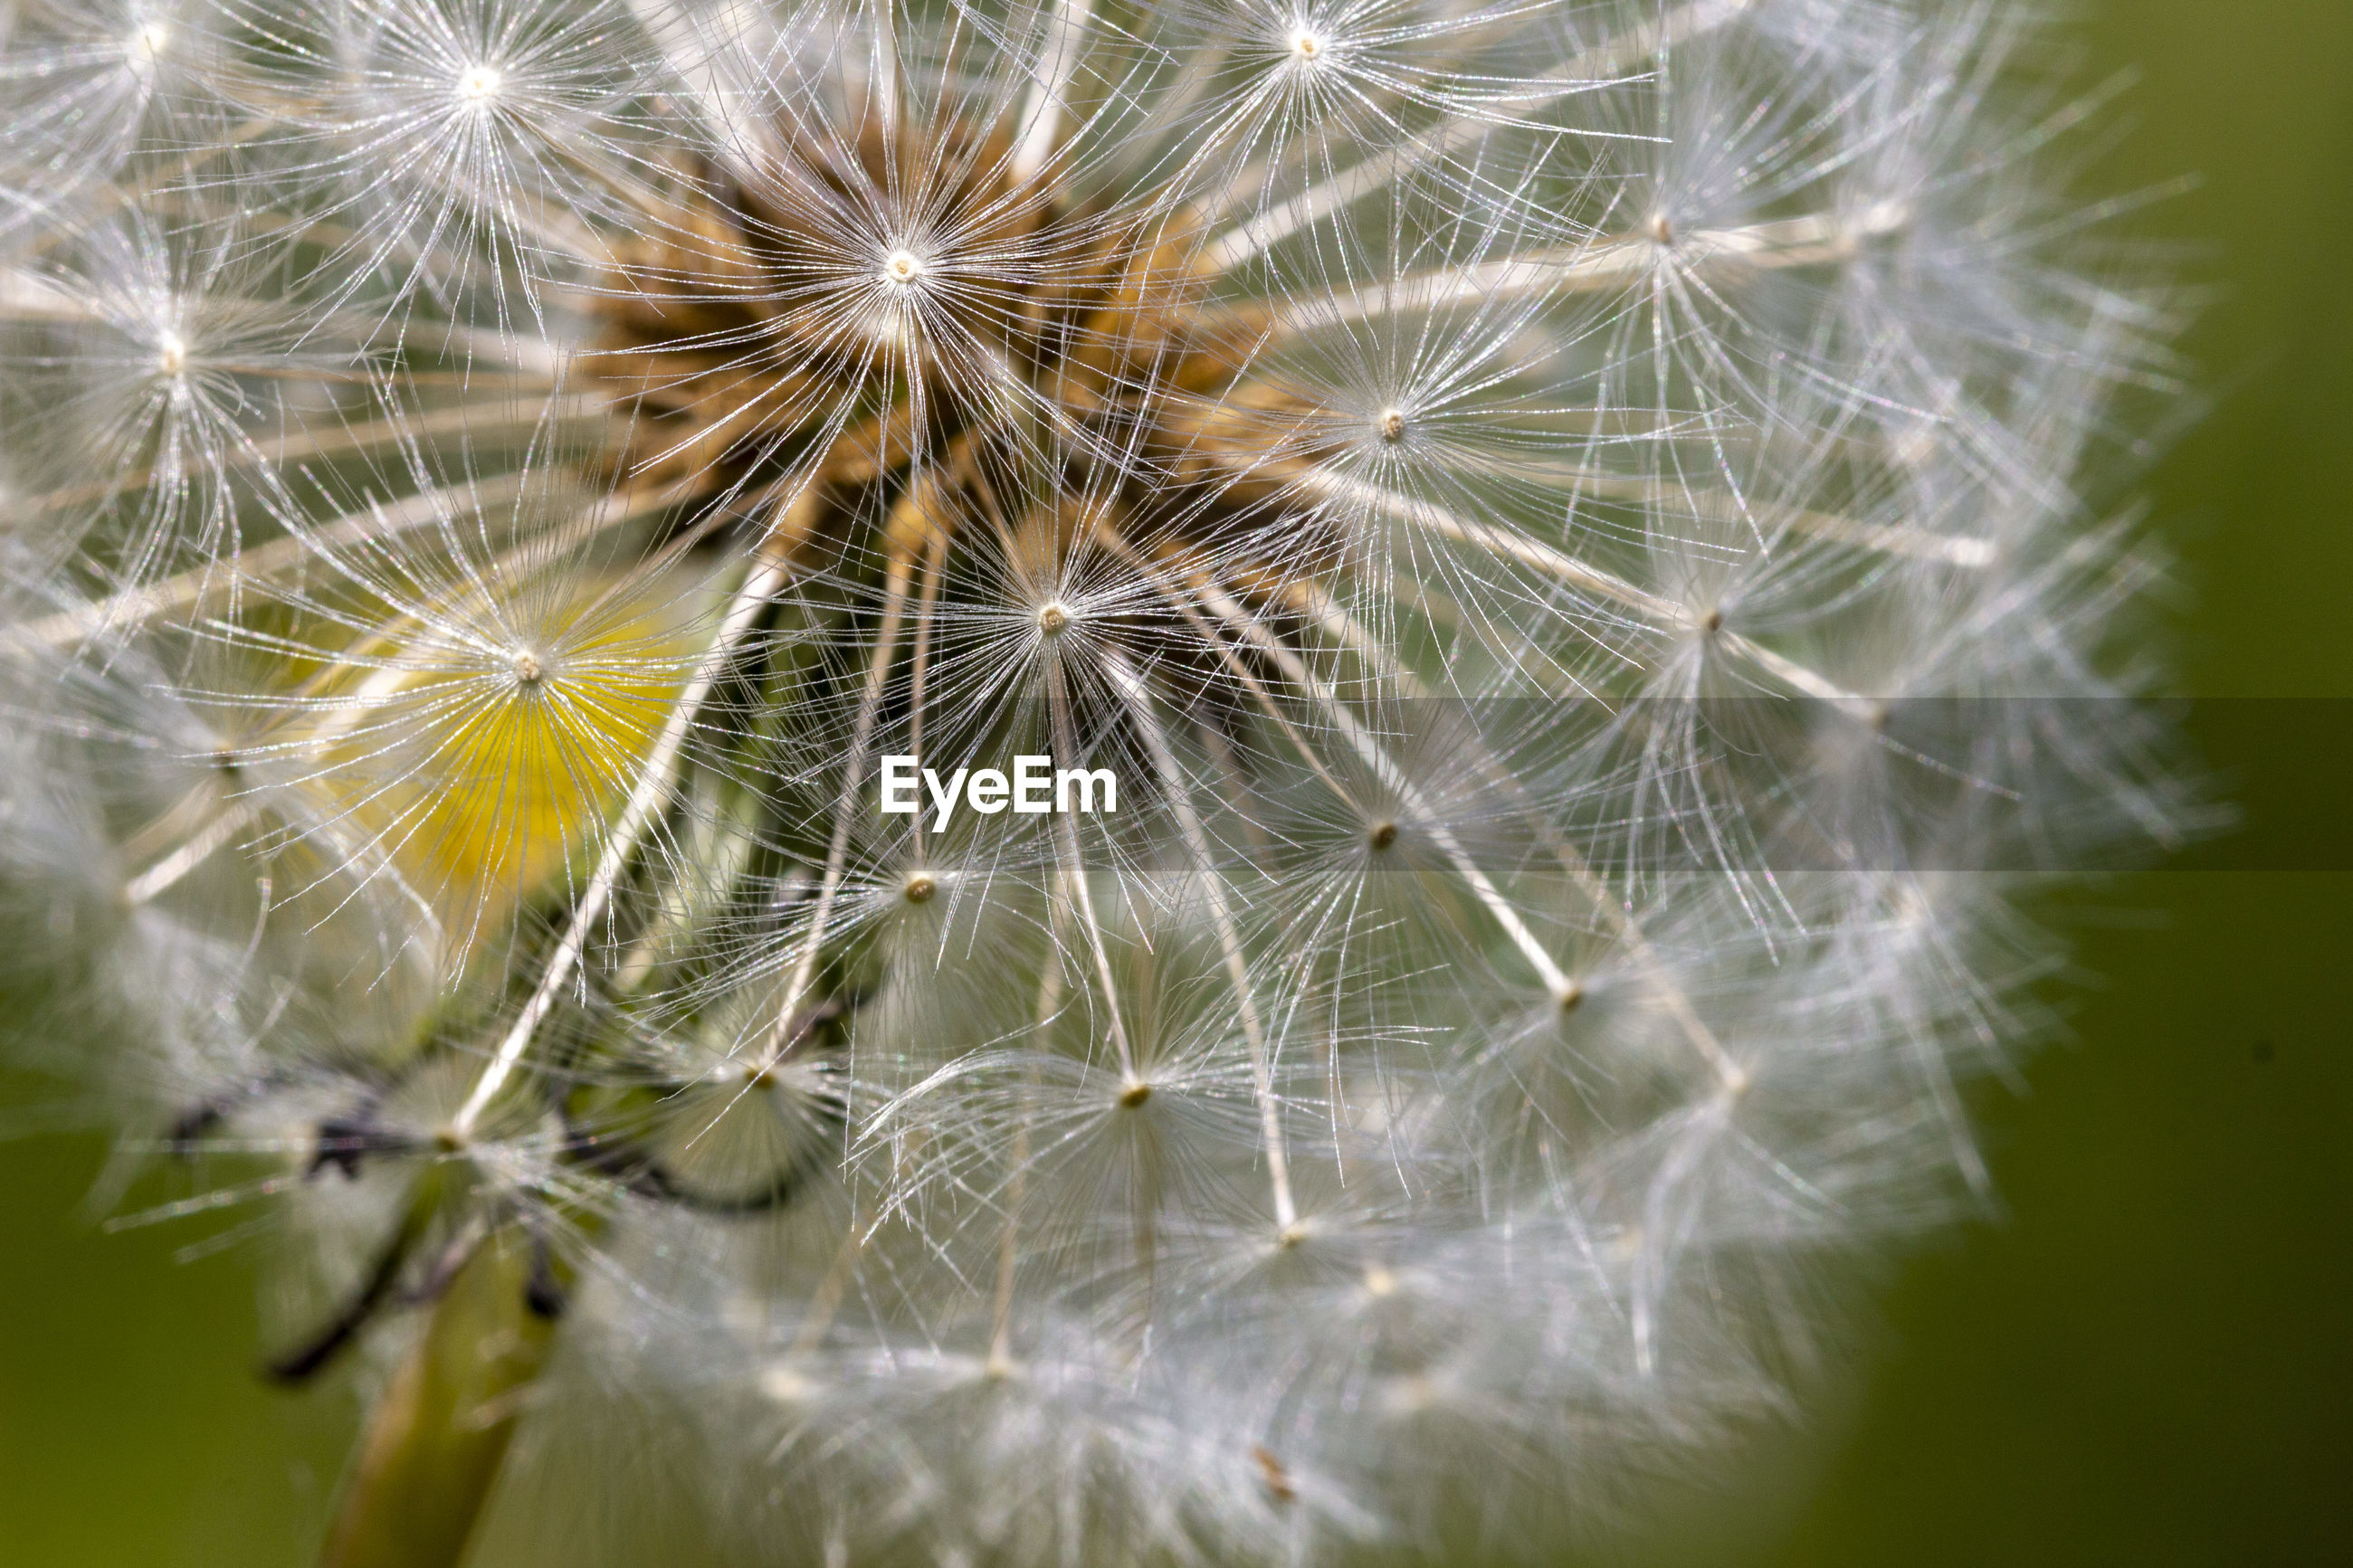 CLOSE-UP OF DANDELION AGAINST WHITE BACKGROUND